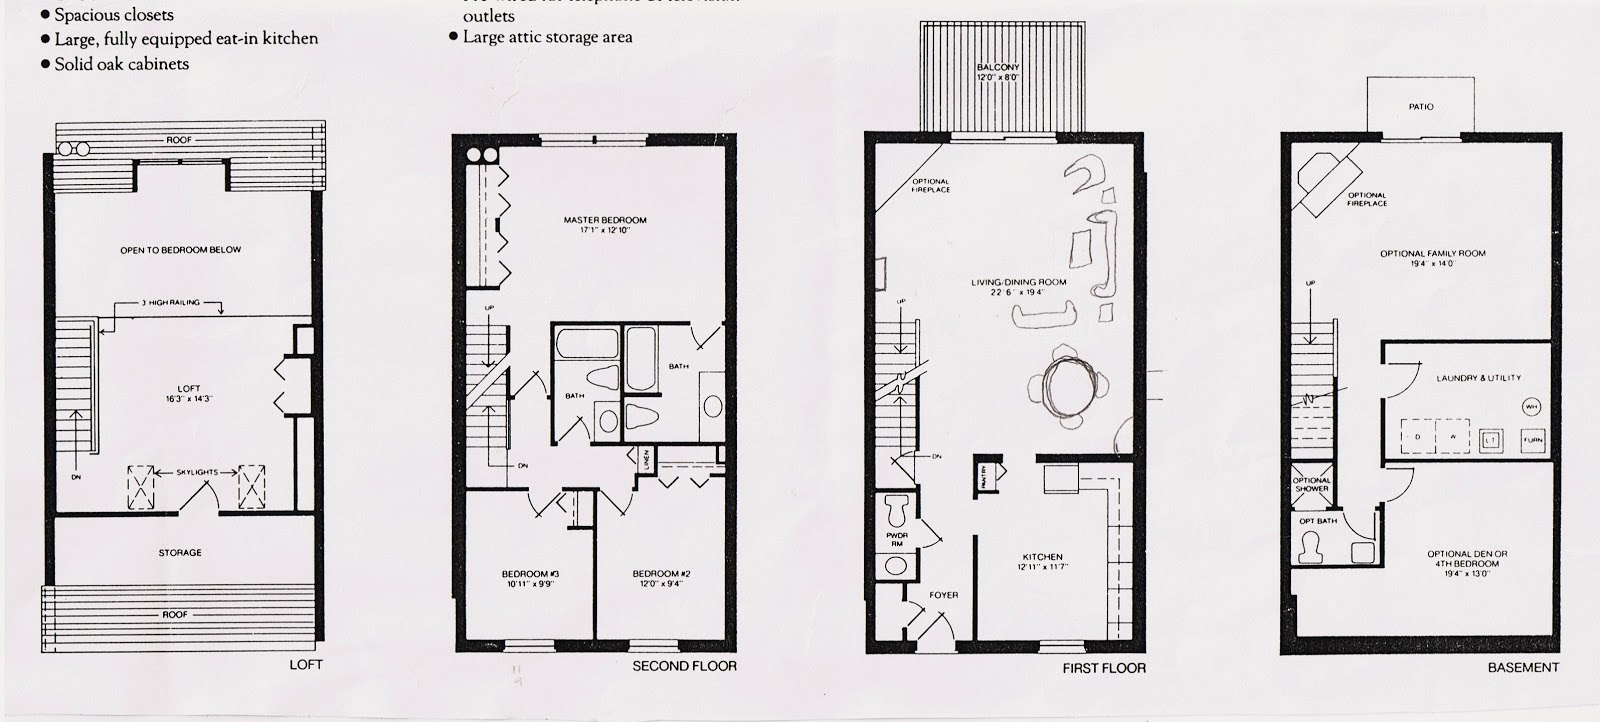 Bathroom floor plans for 7 x 10 home decorating for 7 x 4 bathroom designs